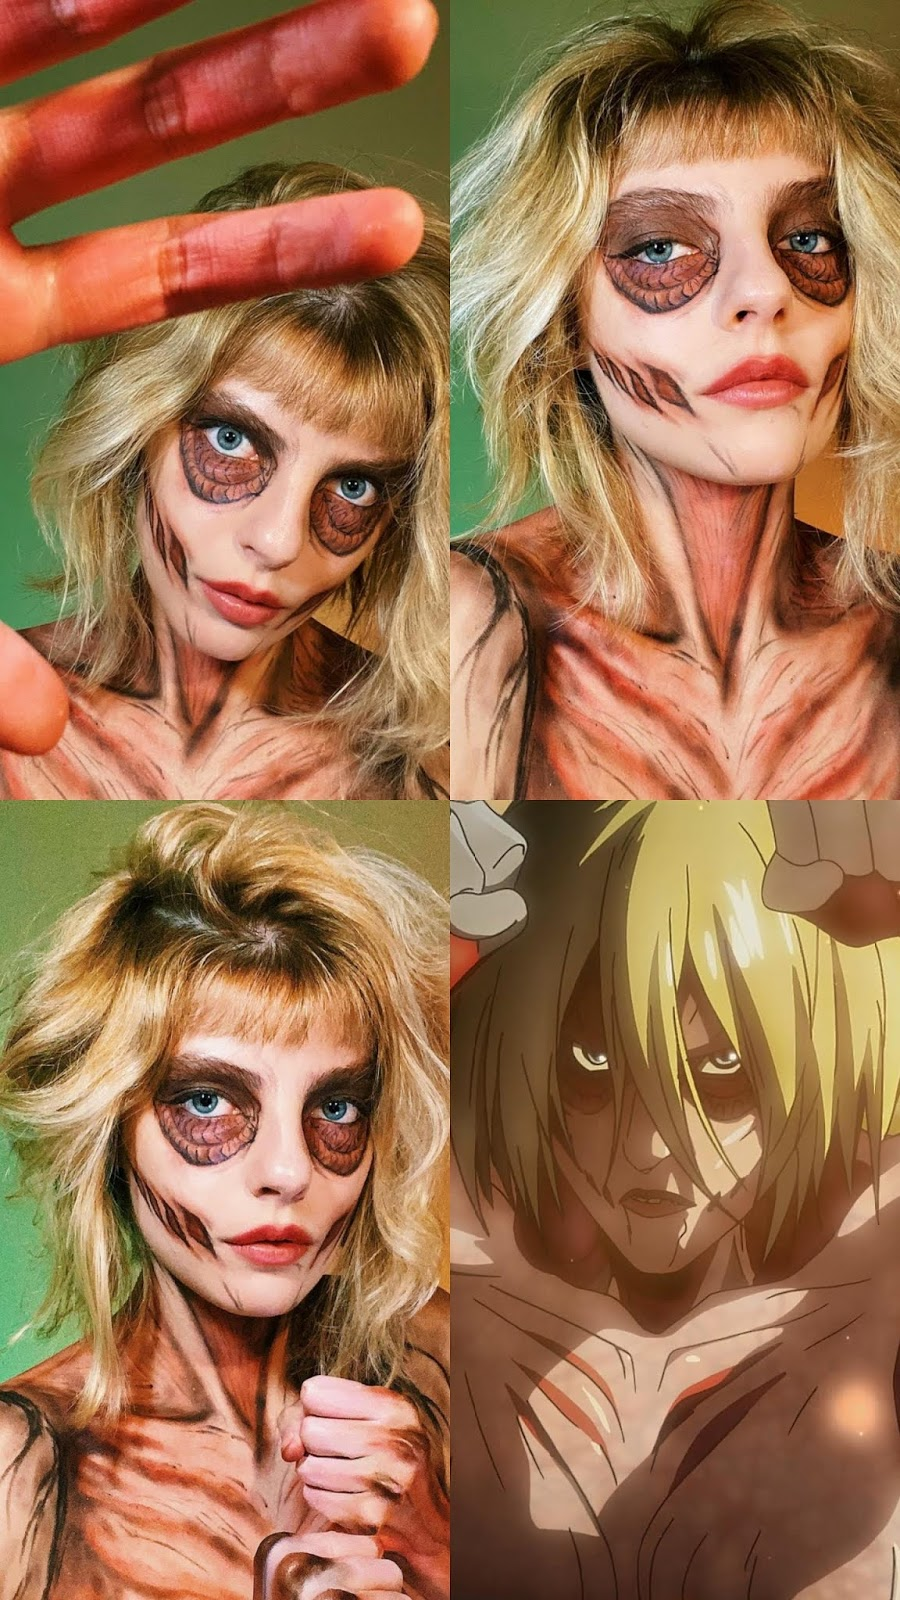 Attack on Titan Female Titan Make-up and Cosplay